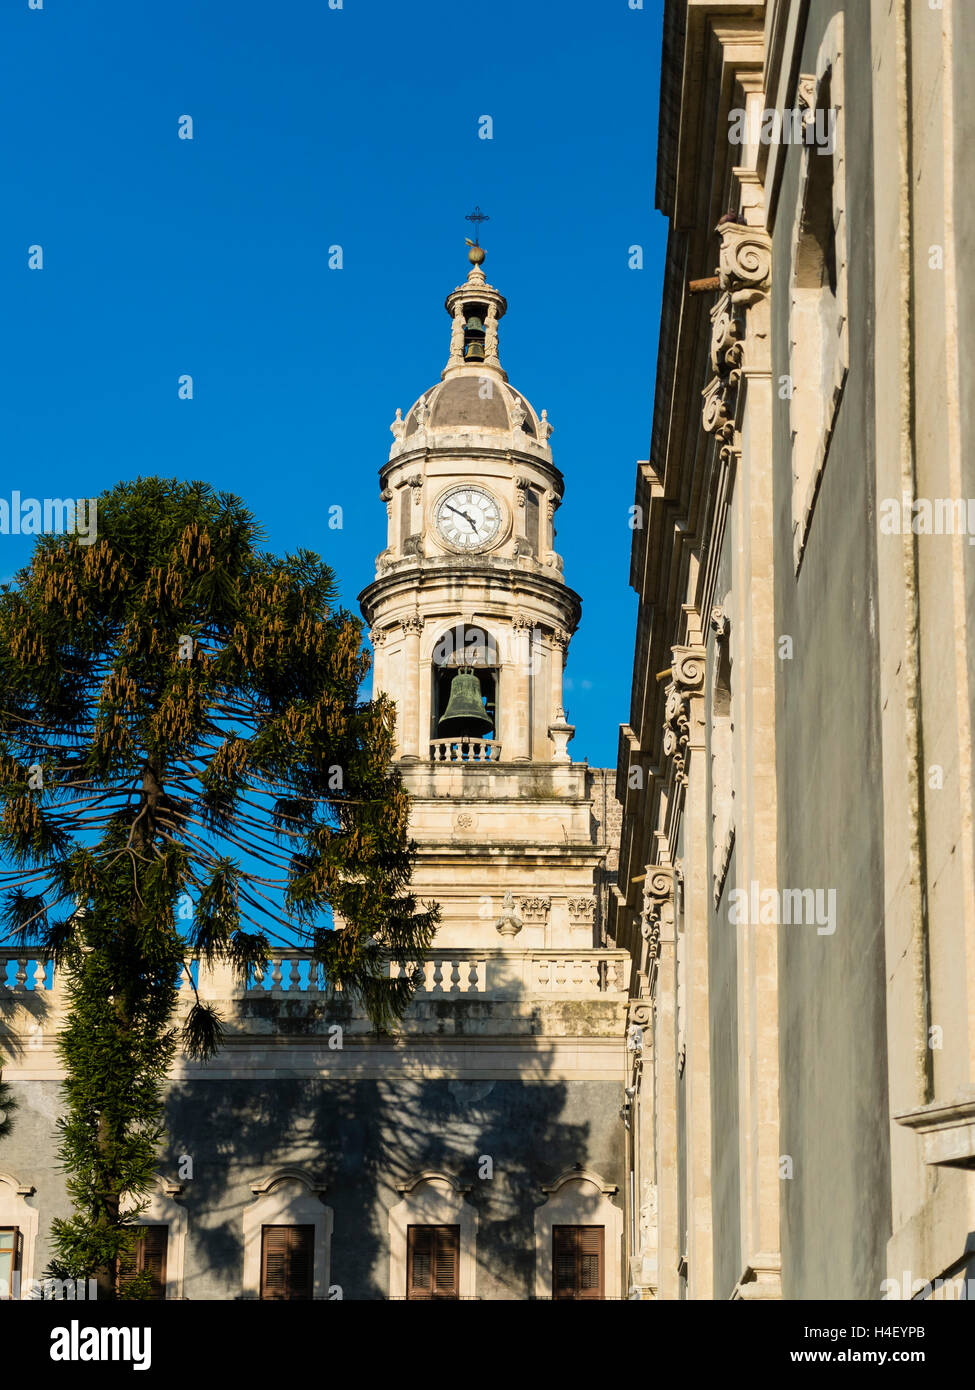 Cathedral of St. Agata, Piazza del Doumo, Province of Catania, Province of Catania, Sicily, Italy - Stock Image